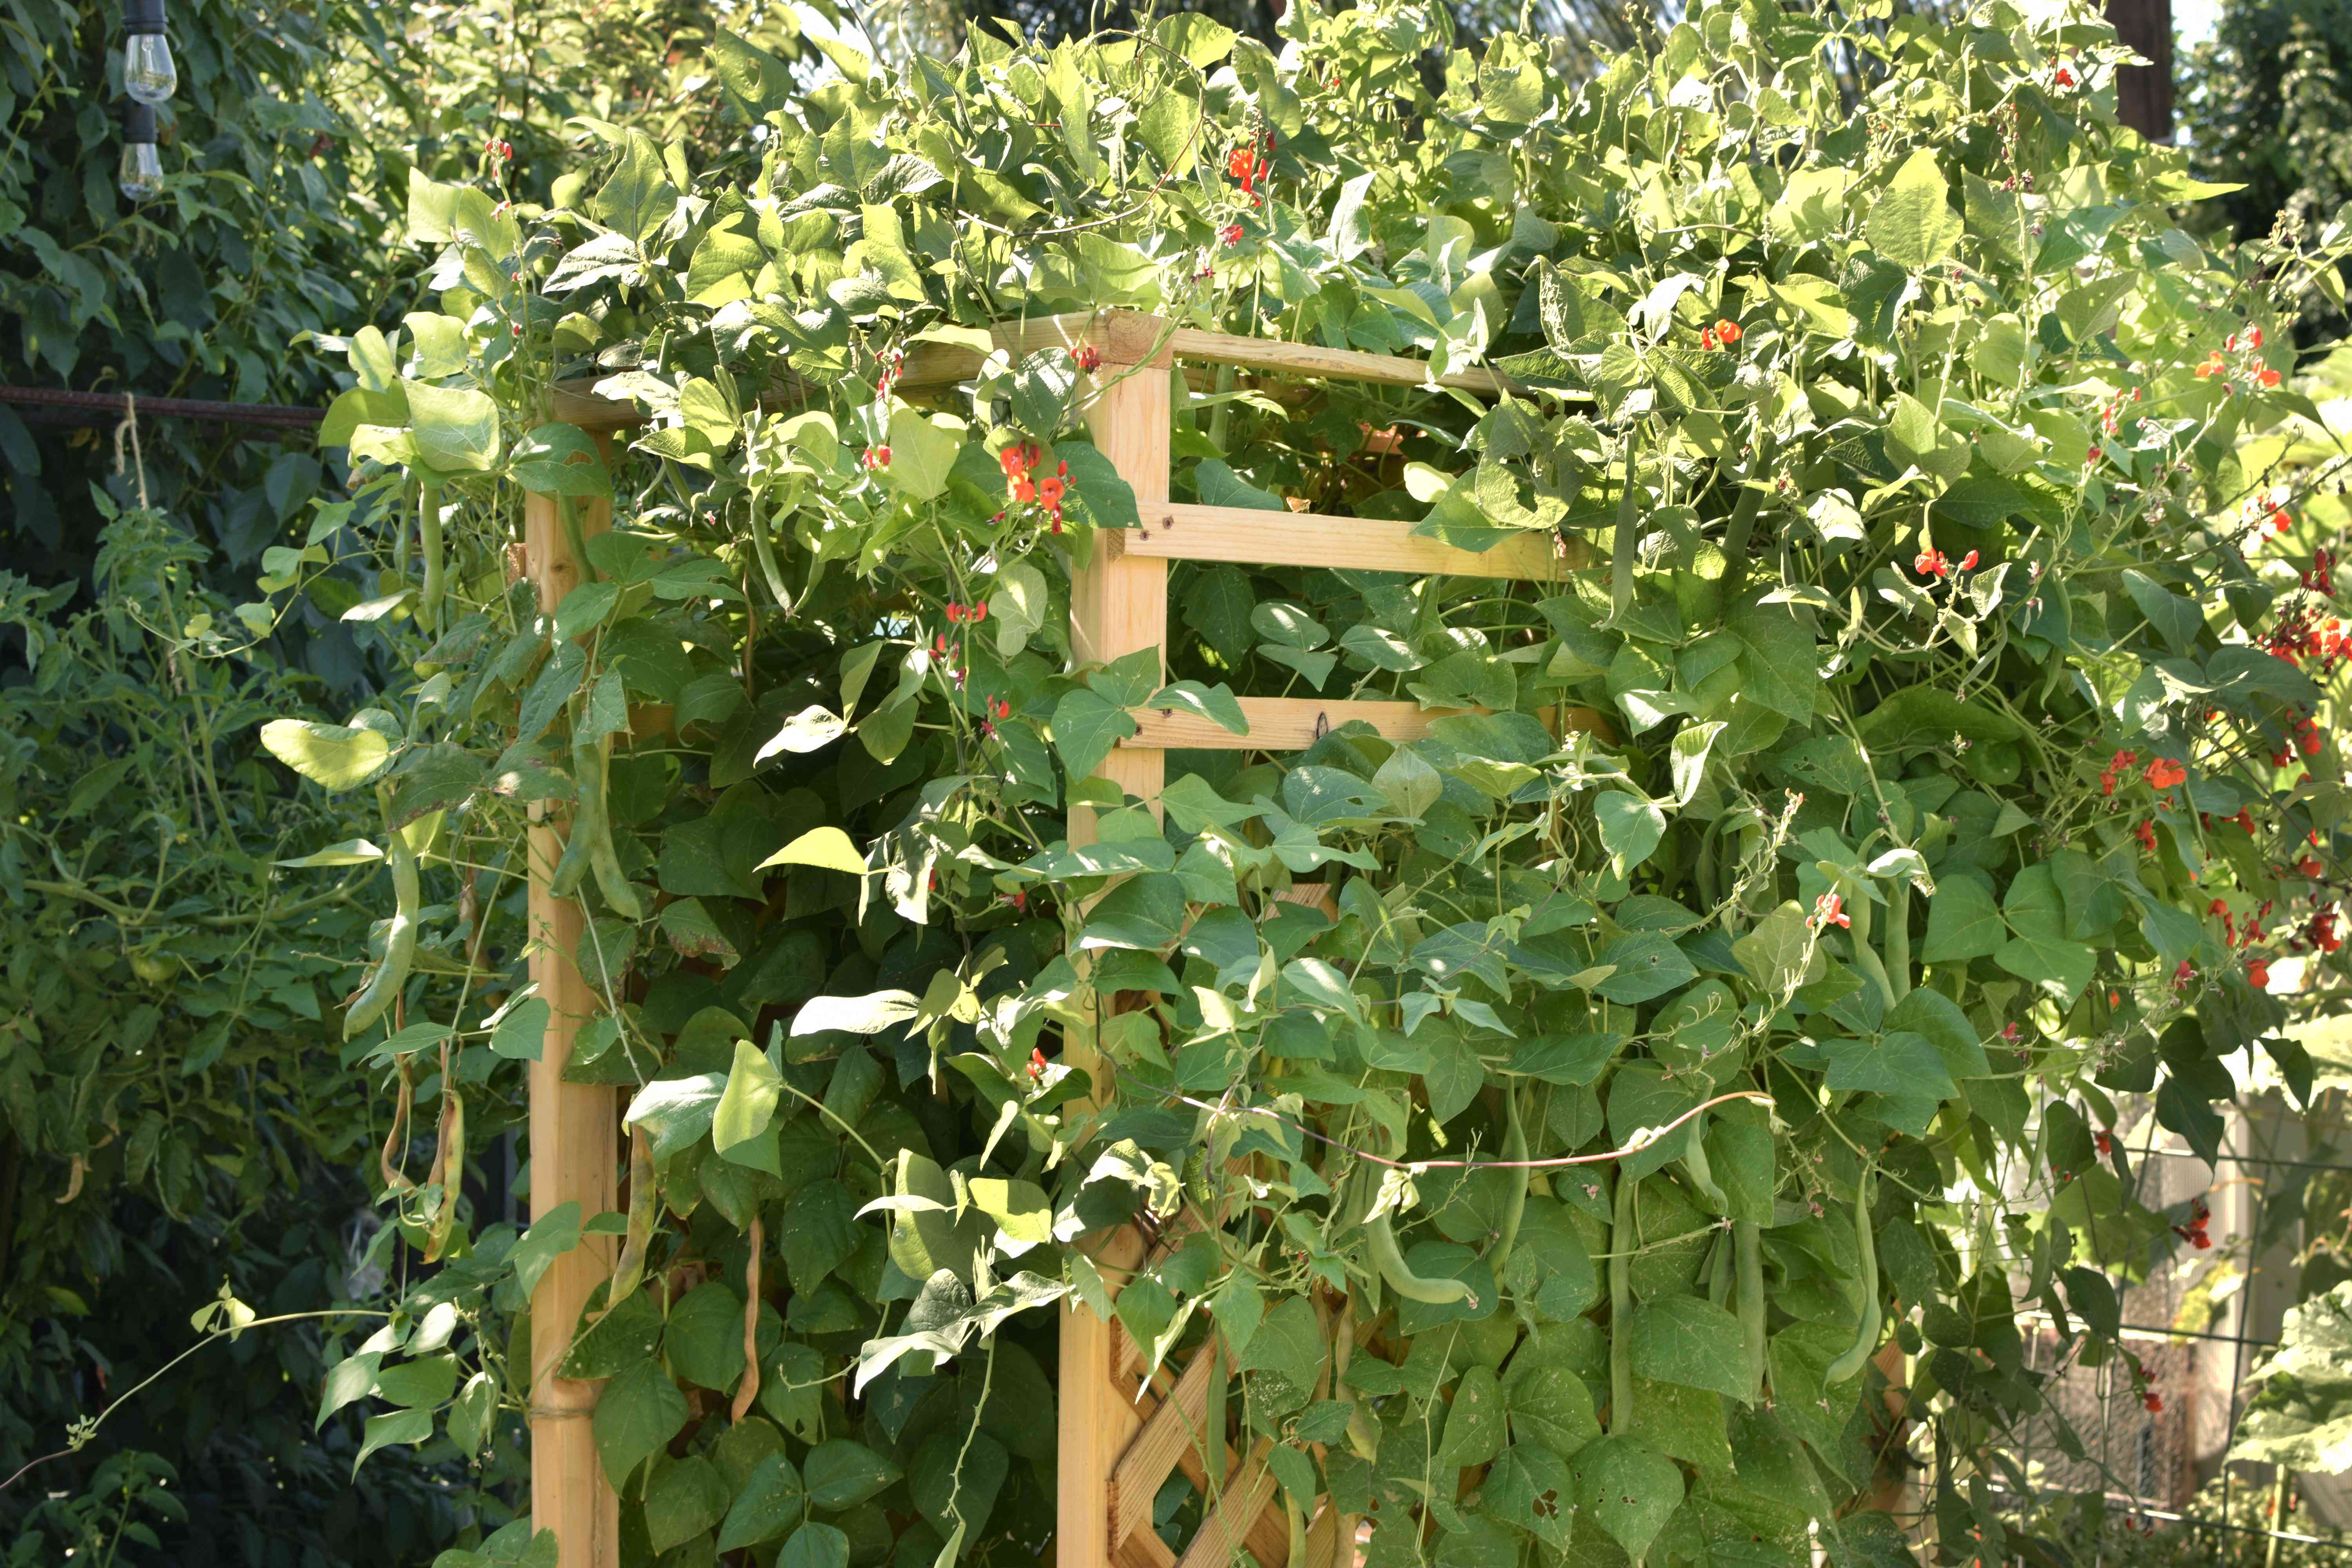 Pole bean vines with small red flowers covering wooden arbor